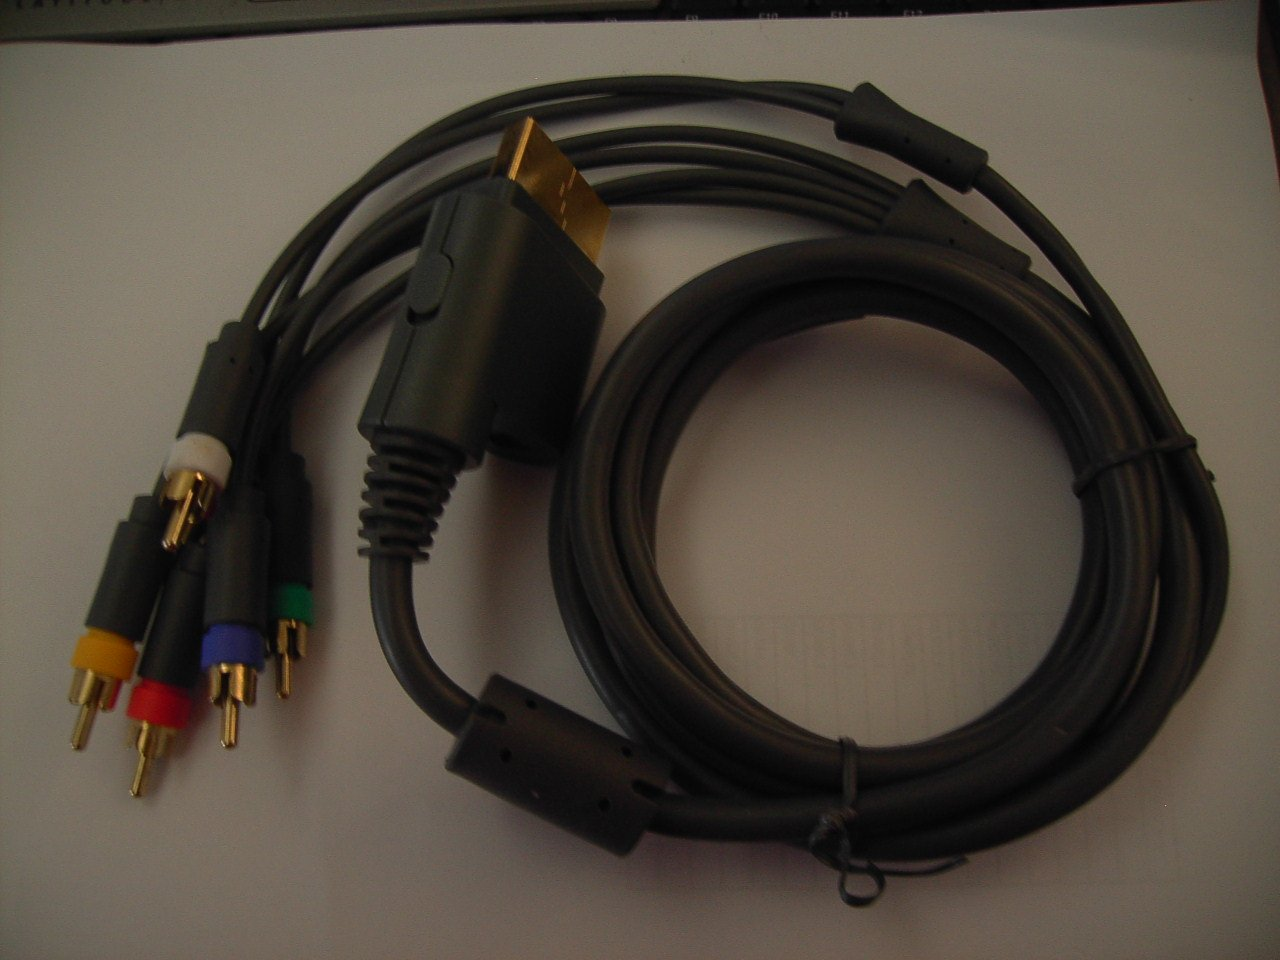 Component - New HDTV HD Audio Video AV Cable RGB for XBOX 360